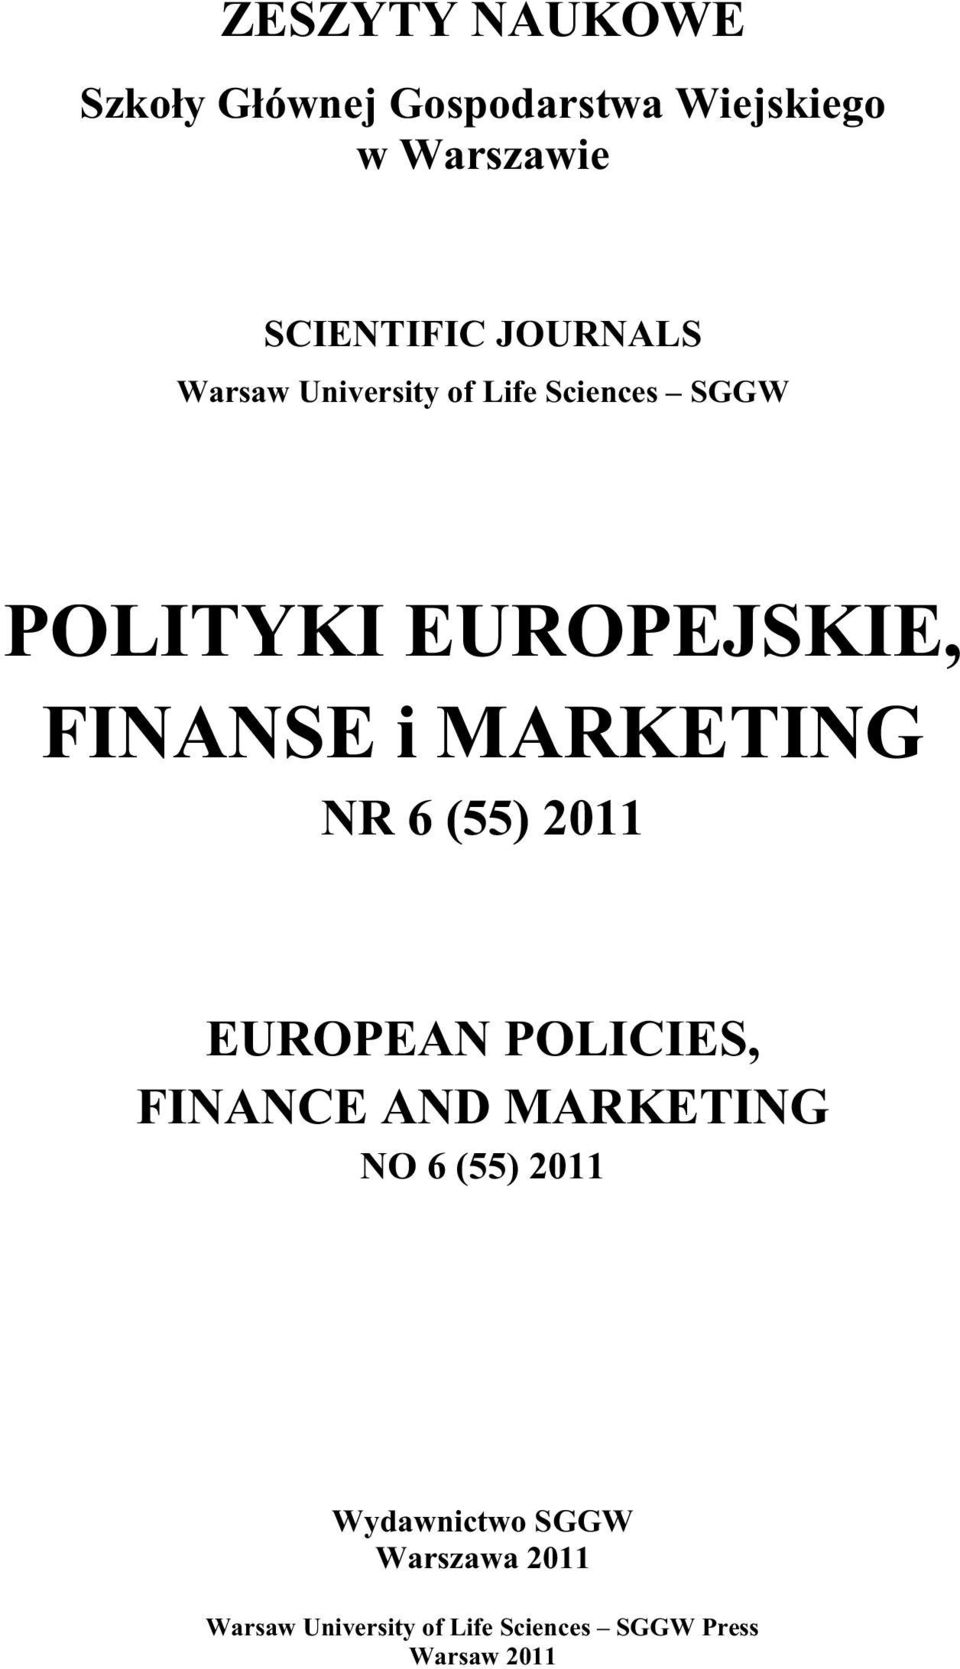 MARKETING NR 6 (55) 2011 EUROPEAN POLICIES, FINANCE AND MARKETING NO 6 (55) 2011